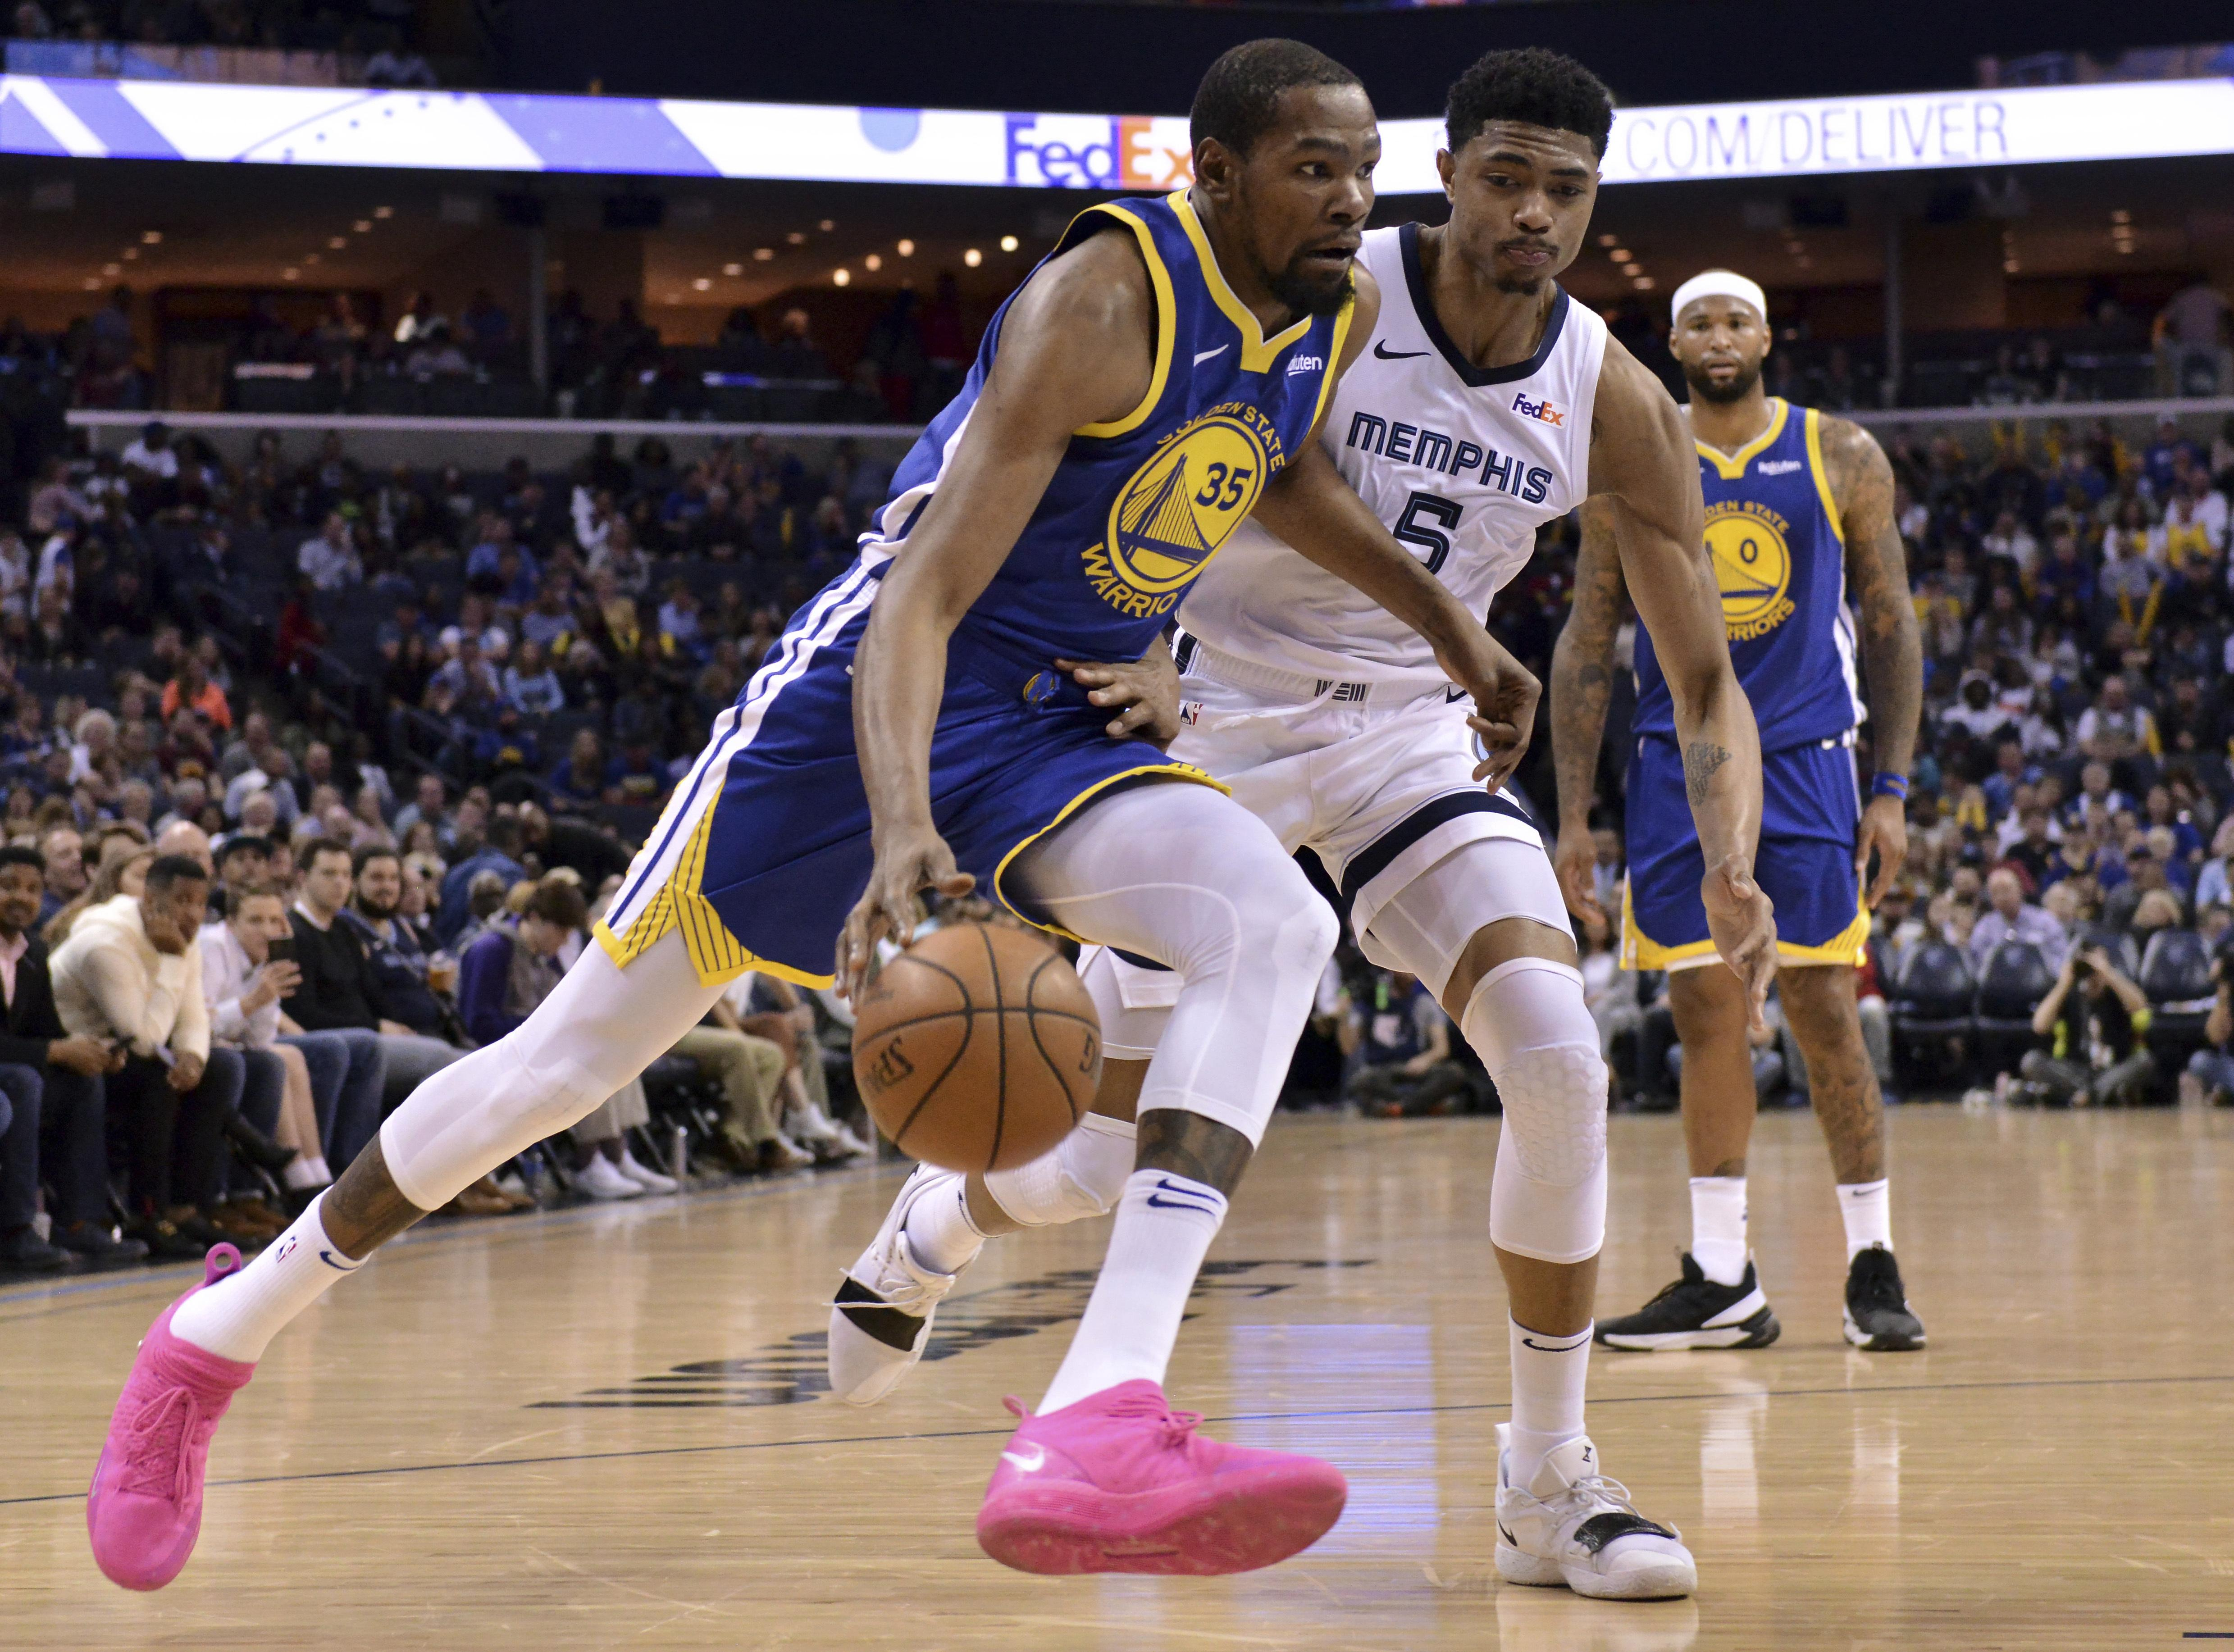 cf6ad467b Golden State Warriors forward Kevin Durant (35) drives against Memphis  Grizzlies forward Bruno Caboclo